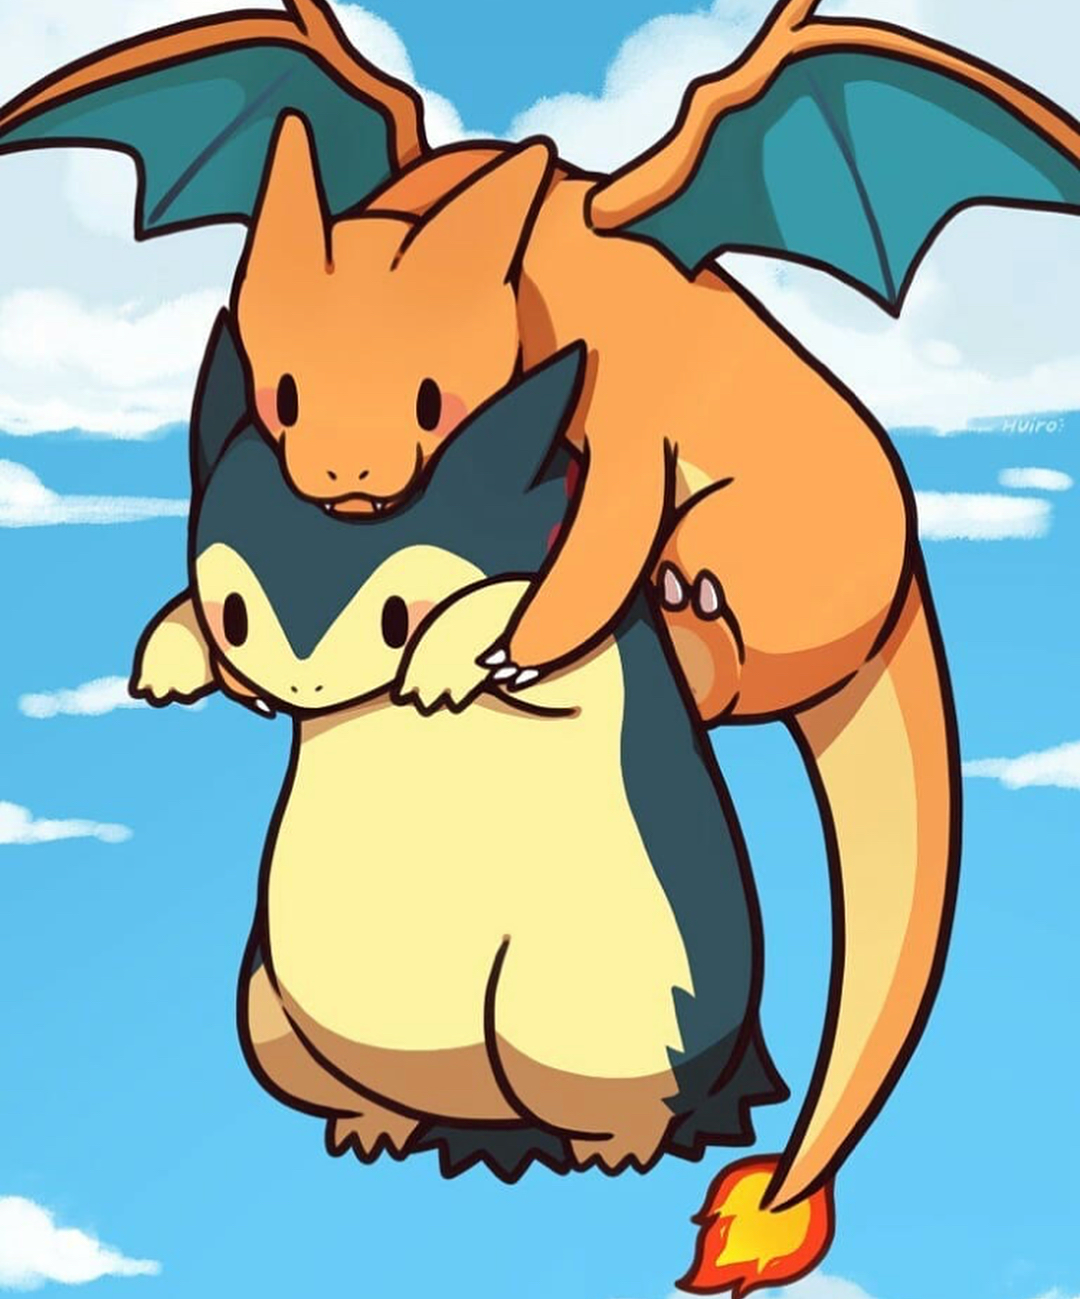 38693d142 Charizard and Typhlosion | Pokemon Art | Pokémon, Pokemon pictures ...